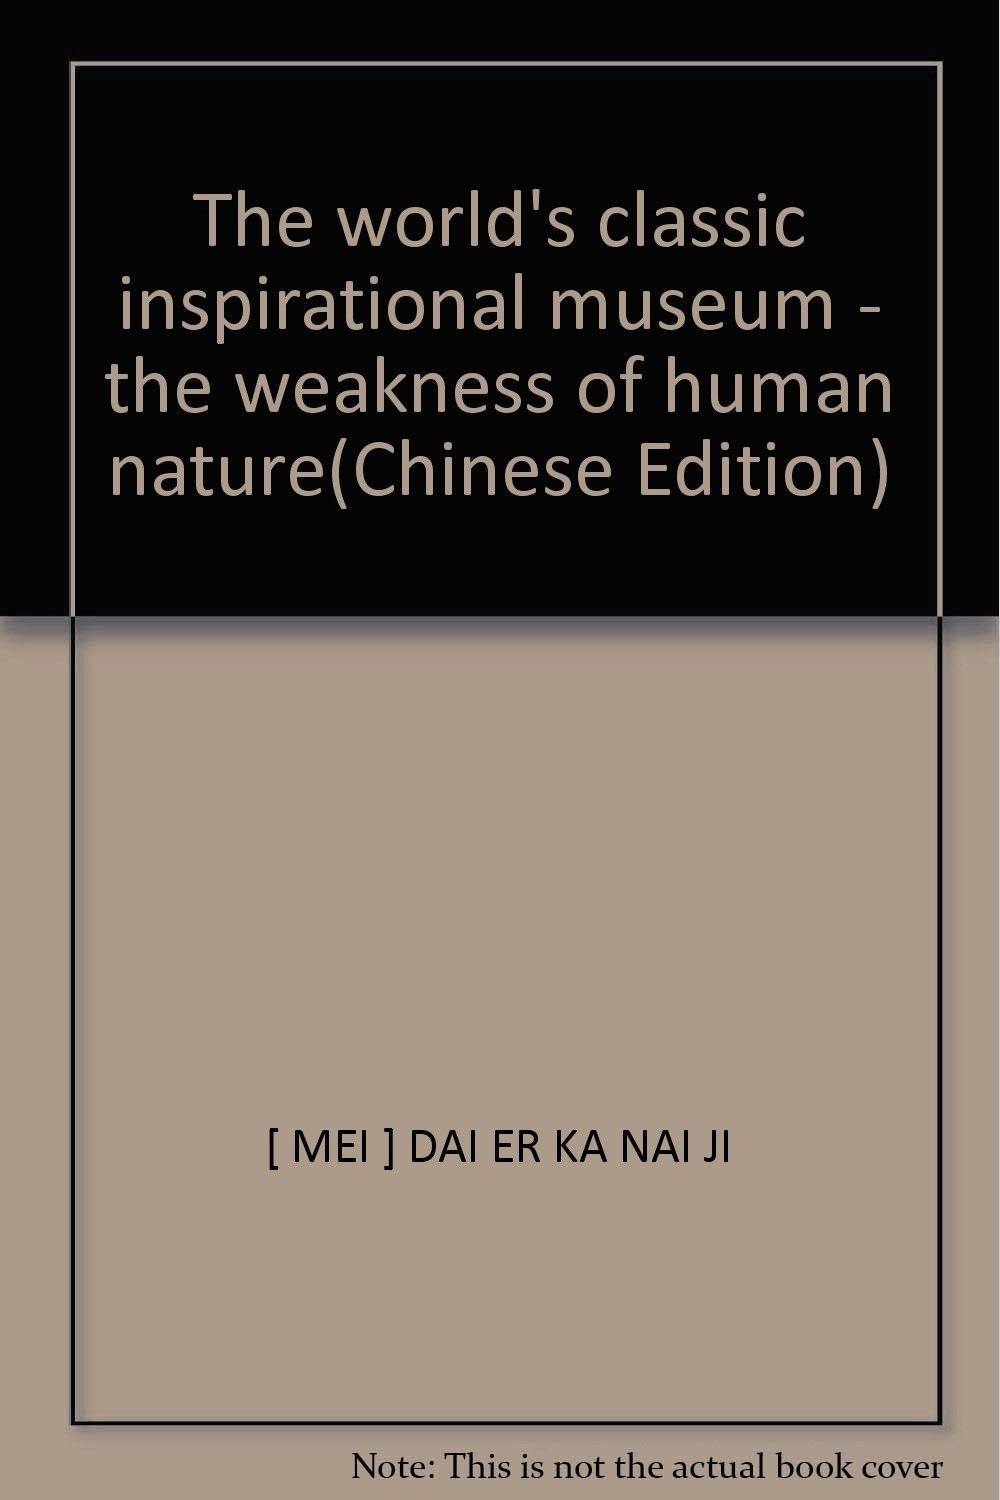 The world's classic inspirational museum - the weakness of human nature(Chinese Edition) pdf